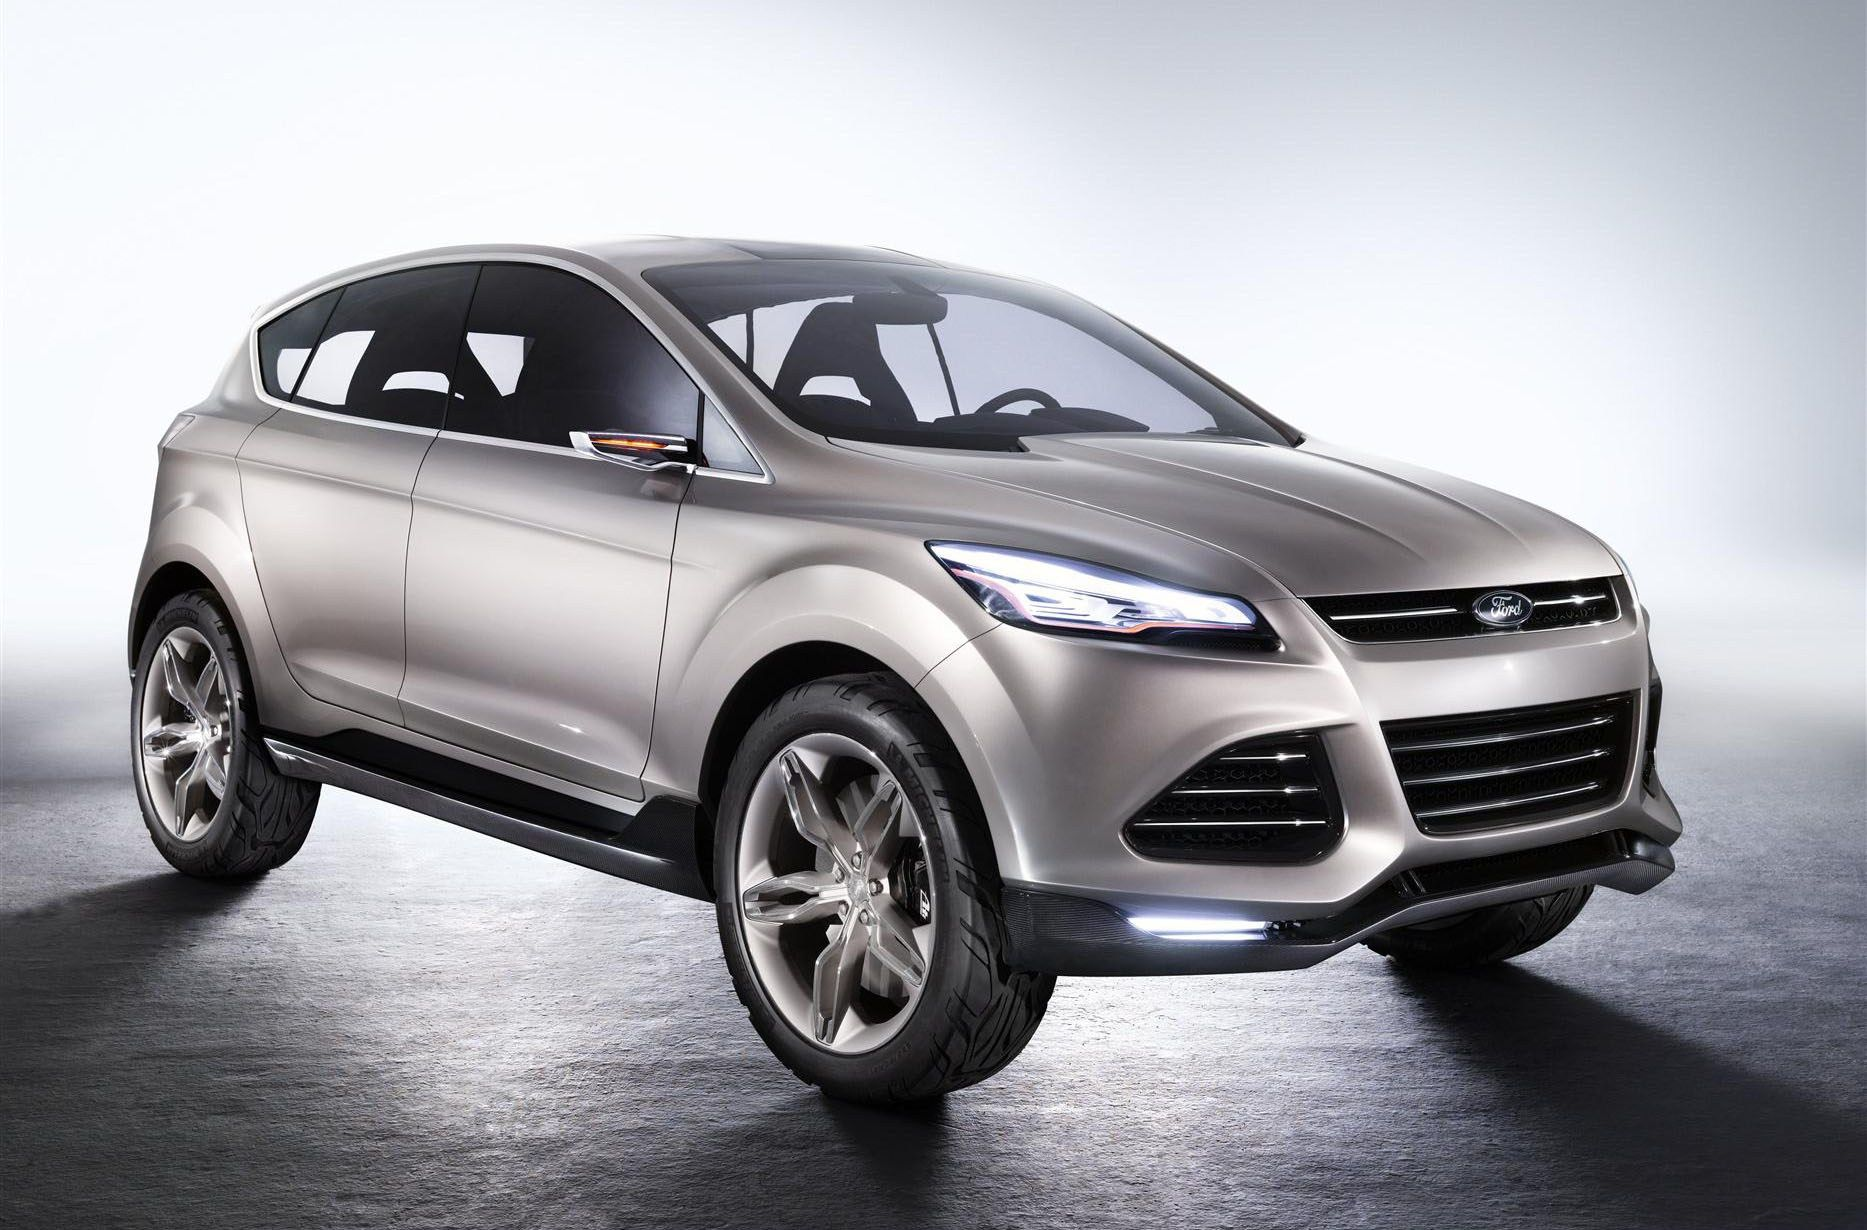 2020 ford escape redesign concept price release date rumor car rumor